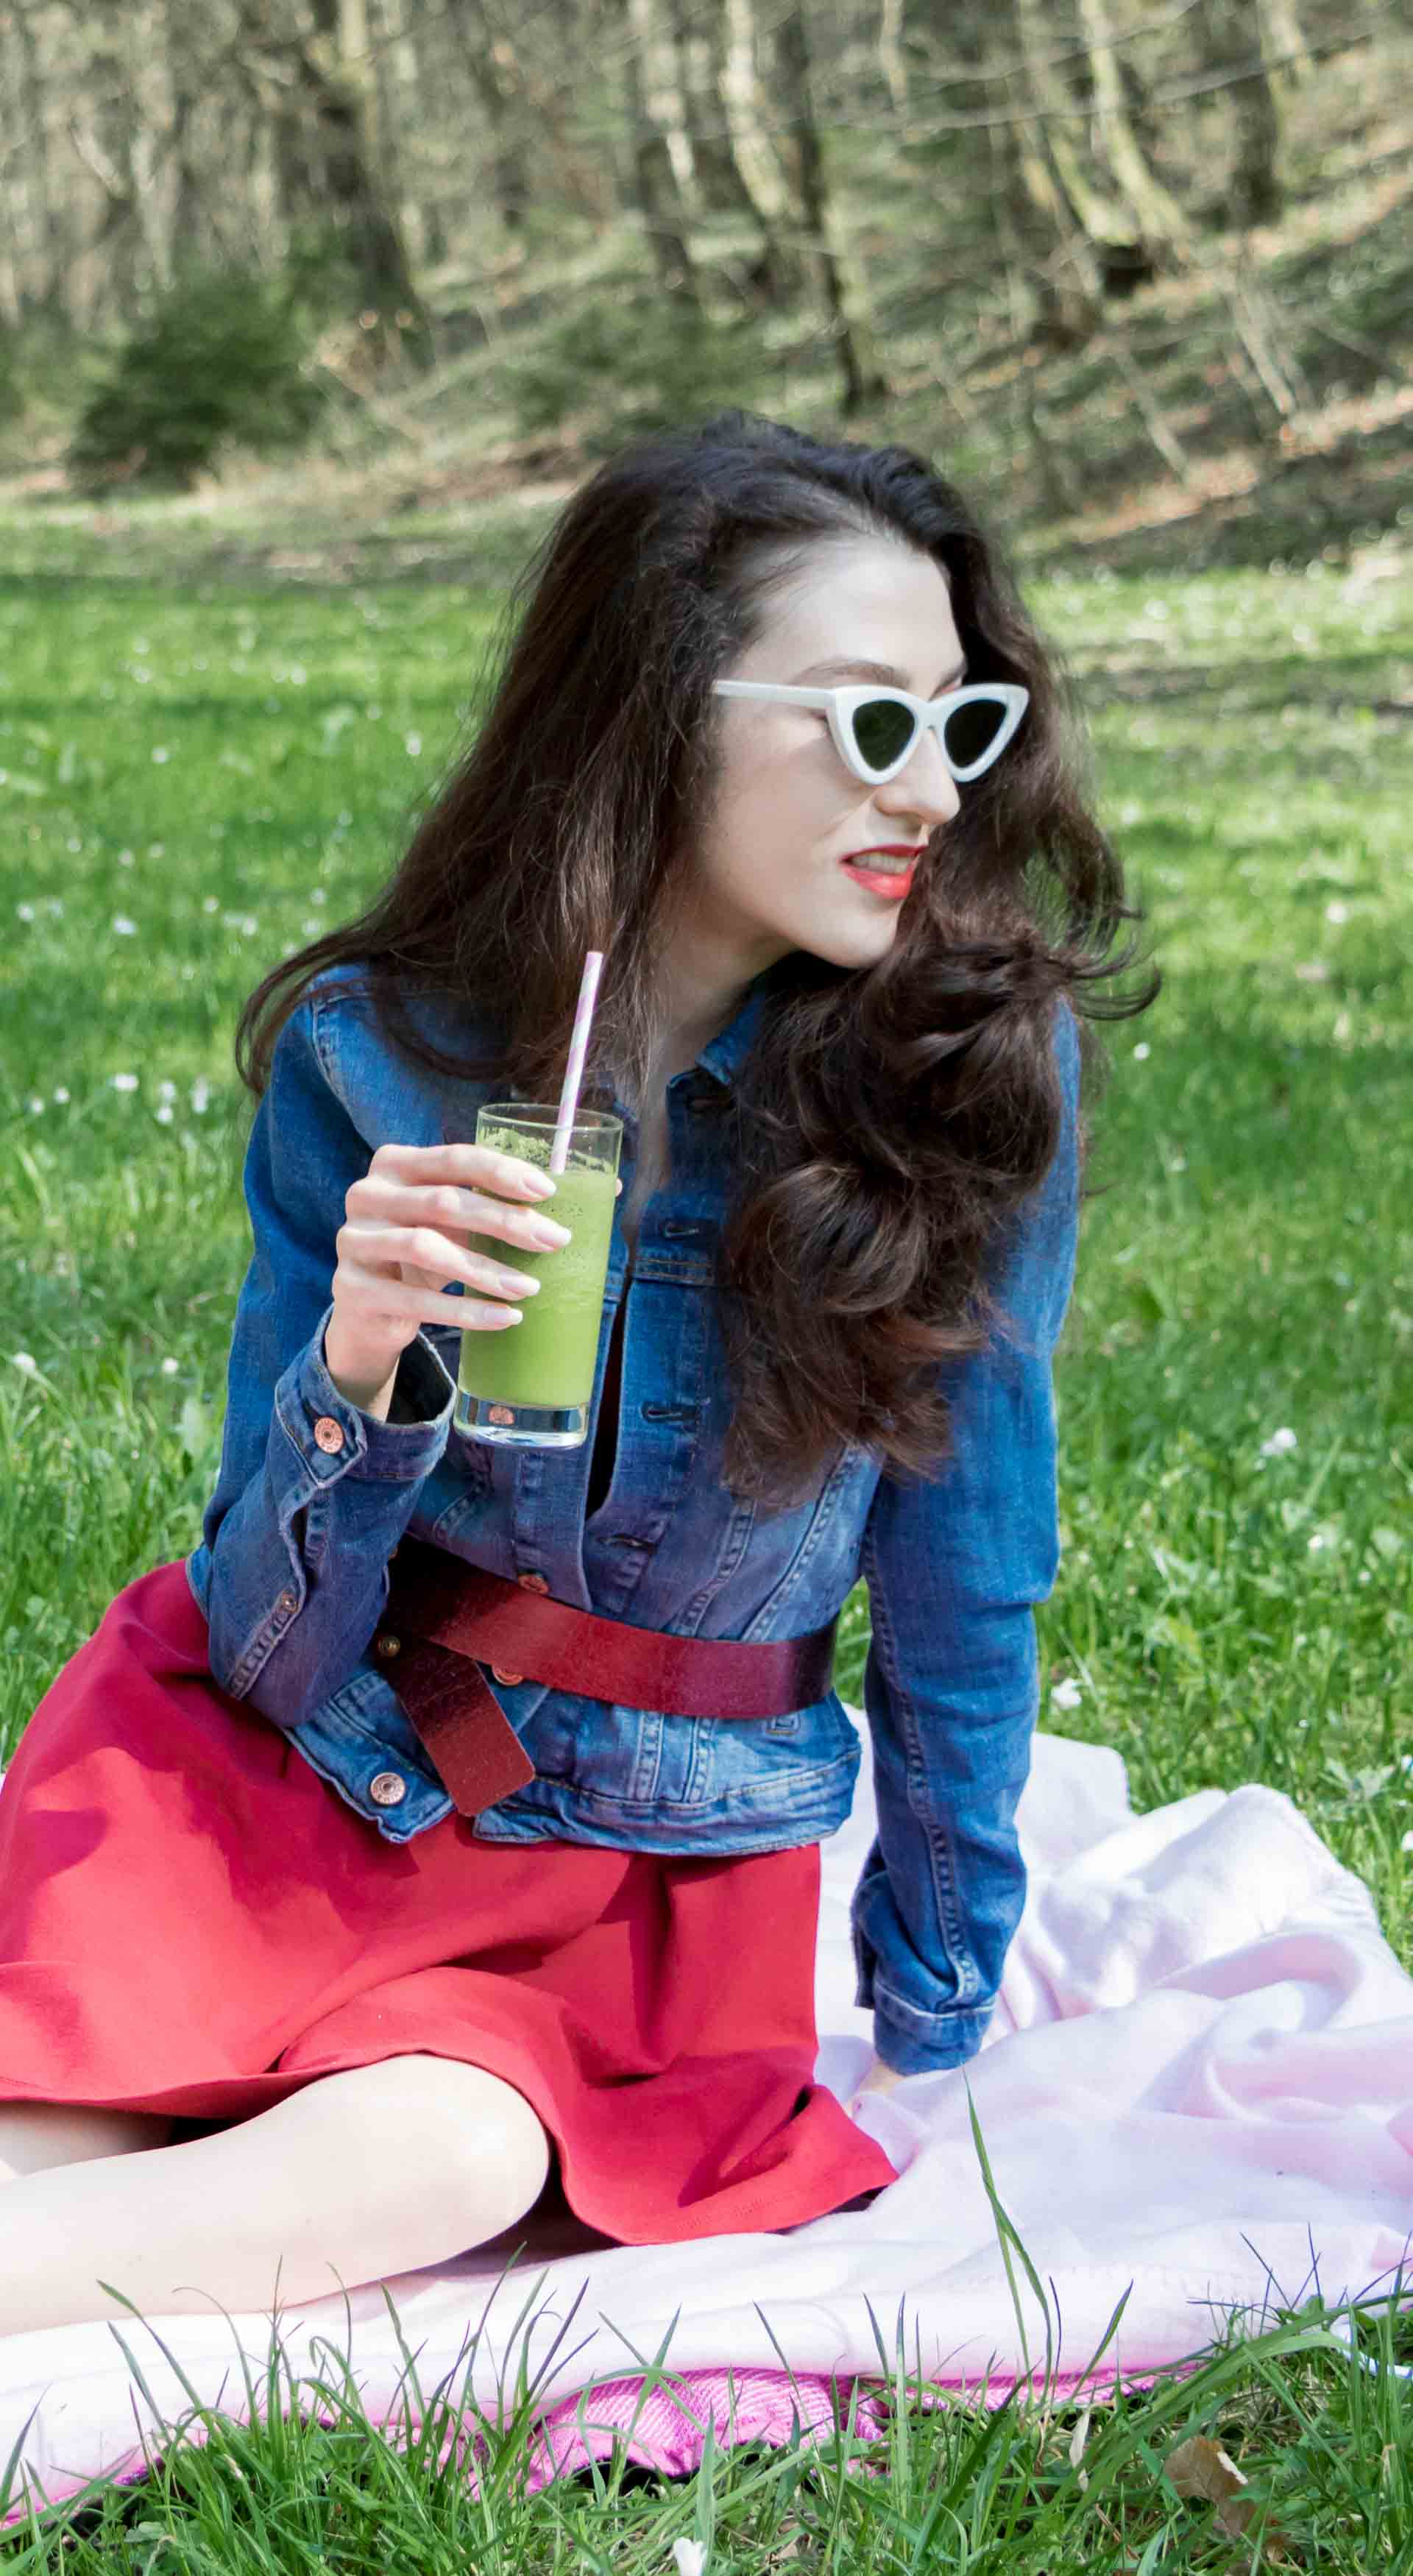 Veronika Lipar Fashion Blogger of Brunette from Wall Street wearing red dress, dangling belt, blue denim jacket, white socks and white pumps, Sam Eldeman x Le Specs, white lolita cat-eye sunglasses, Nannacay raffia basket bag for spring picnic